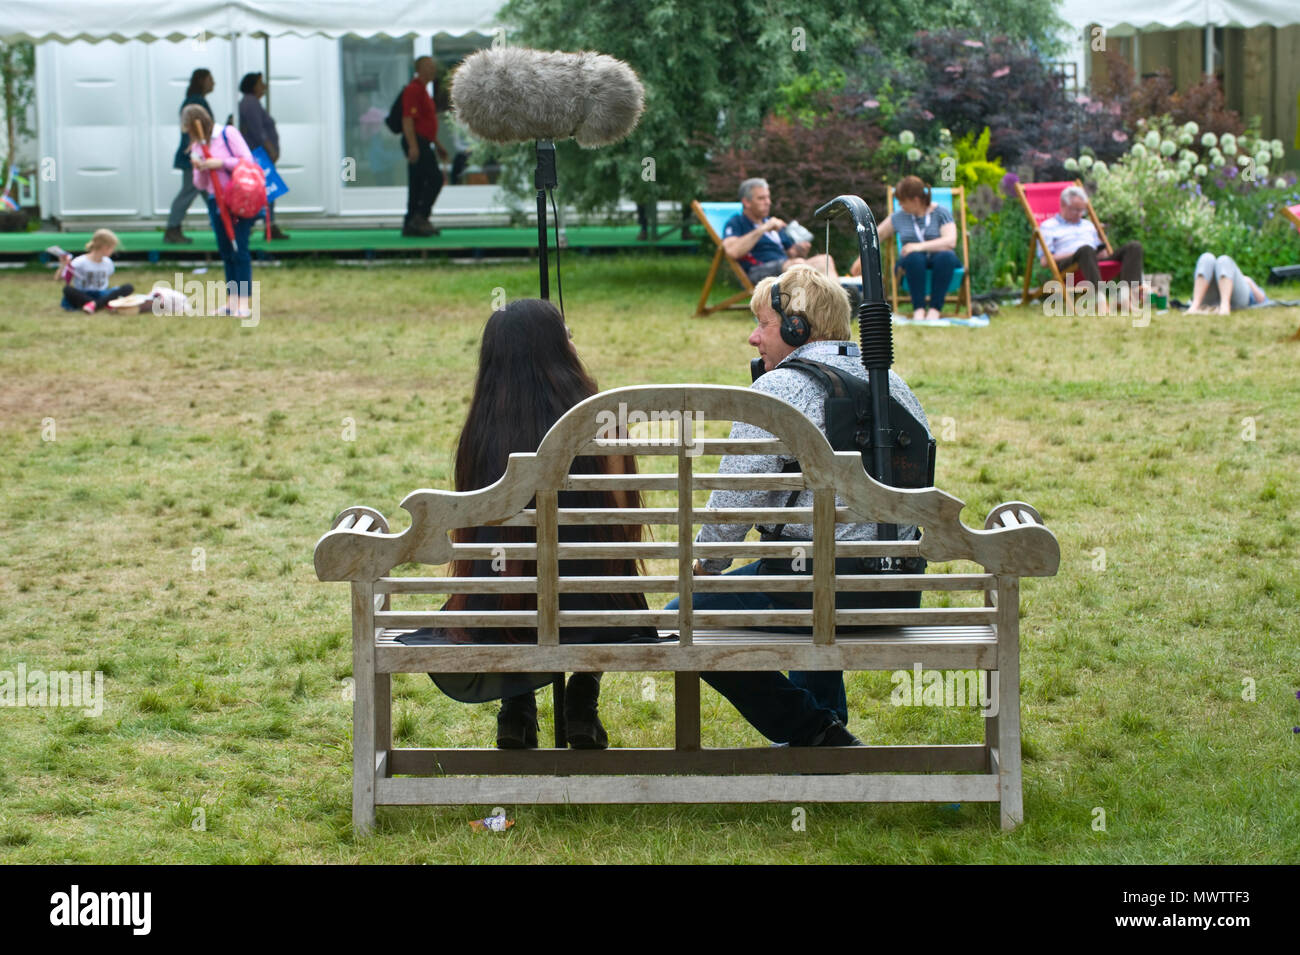 TV crew sat on bench chatting in the garden area at Hay Festival 2018 Hay-on-Wye Powys Wales UK - Stock Image